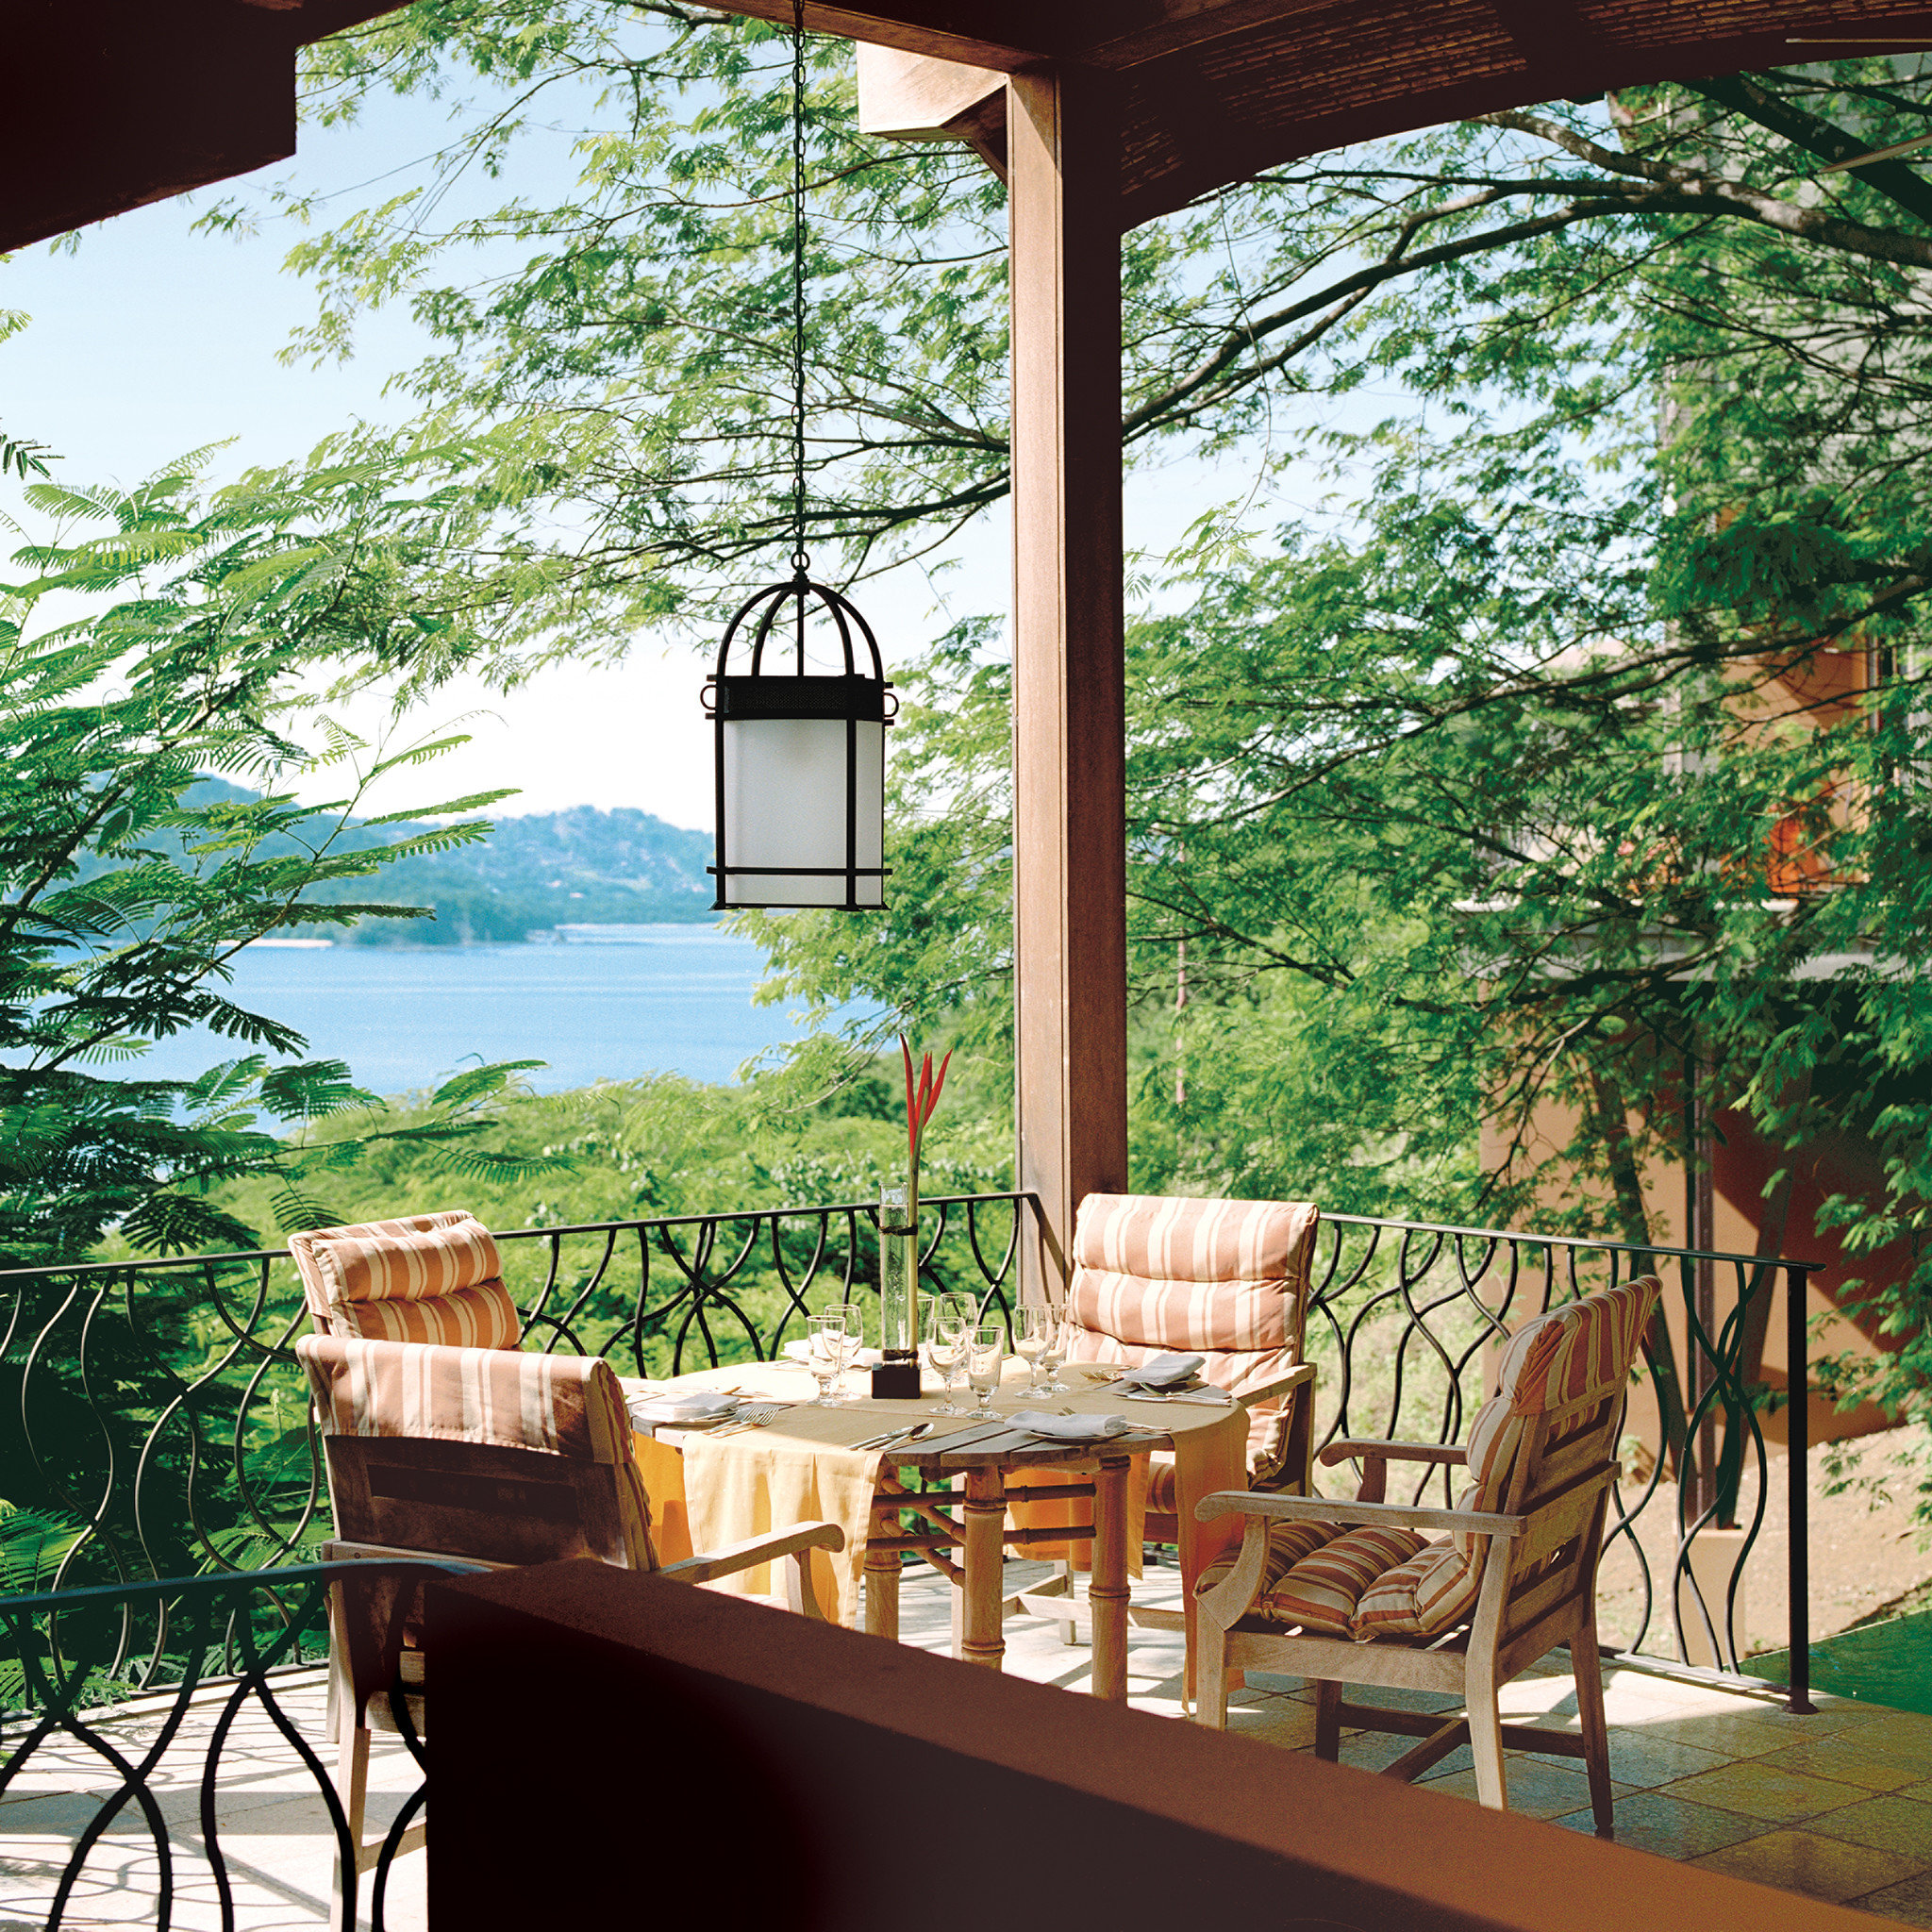 Beach Hotels Living Lounge Luxury Ocean Scenic views tree table outdoor property building house estate backyard home Courtyard outdoor structure Villa cottage interior design Resort porch Garden yard furniture area